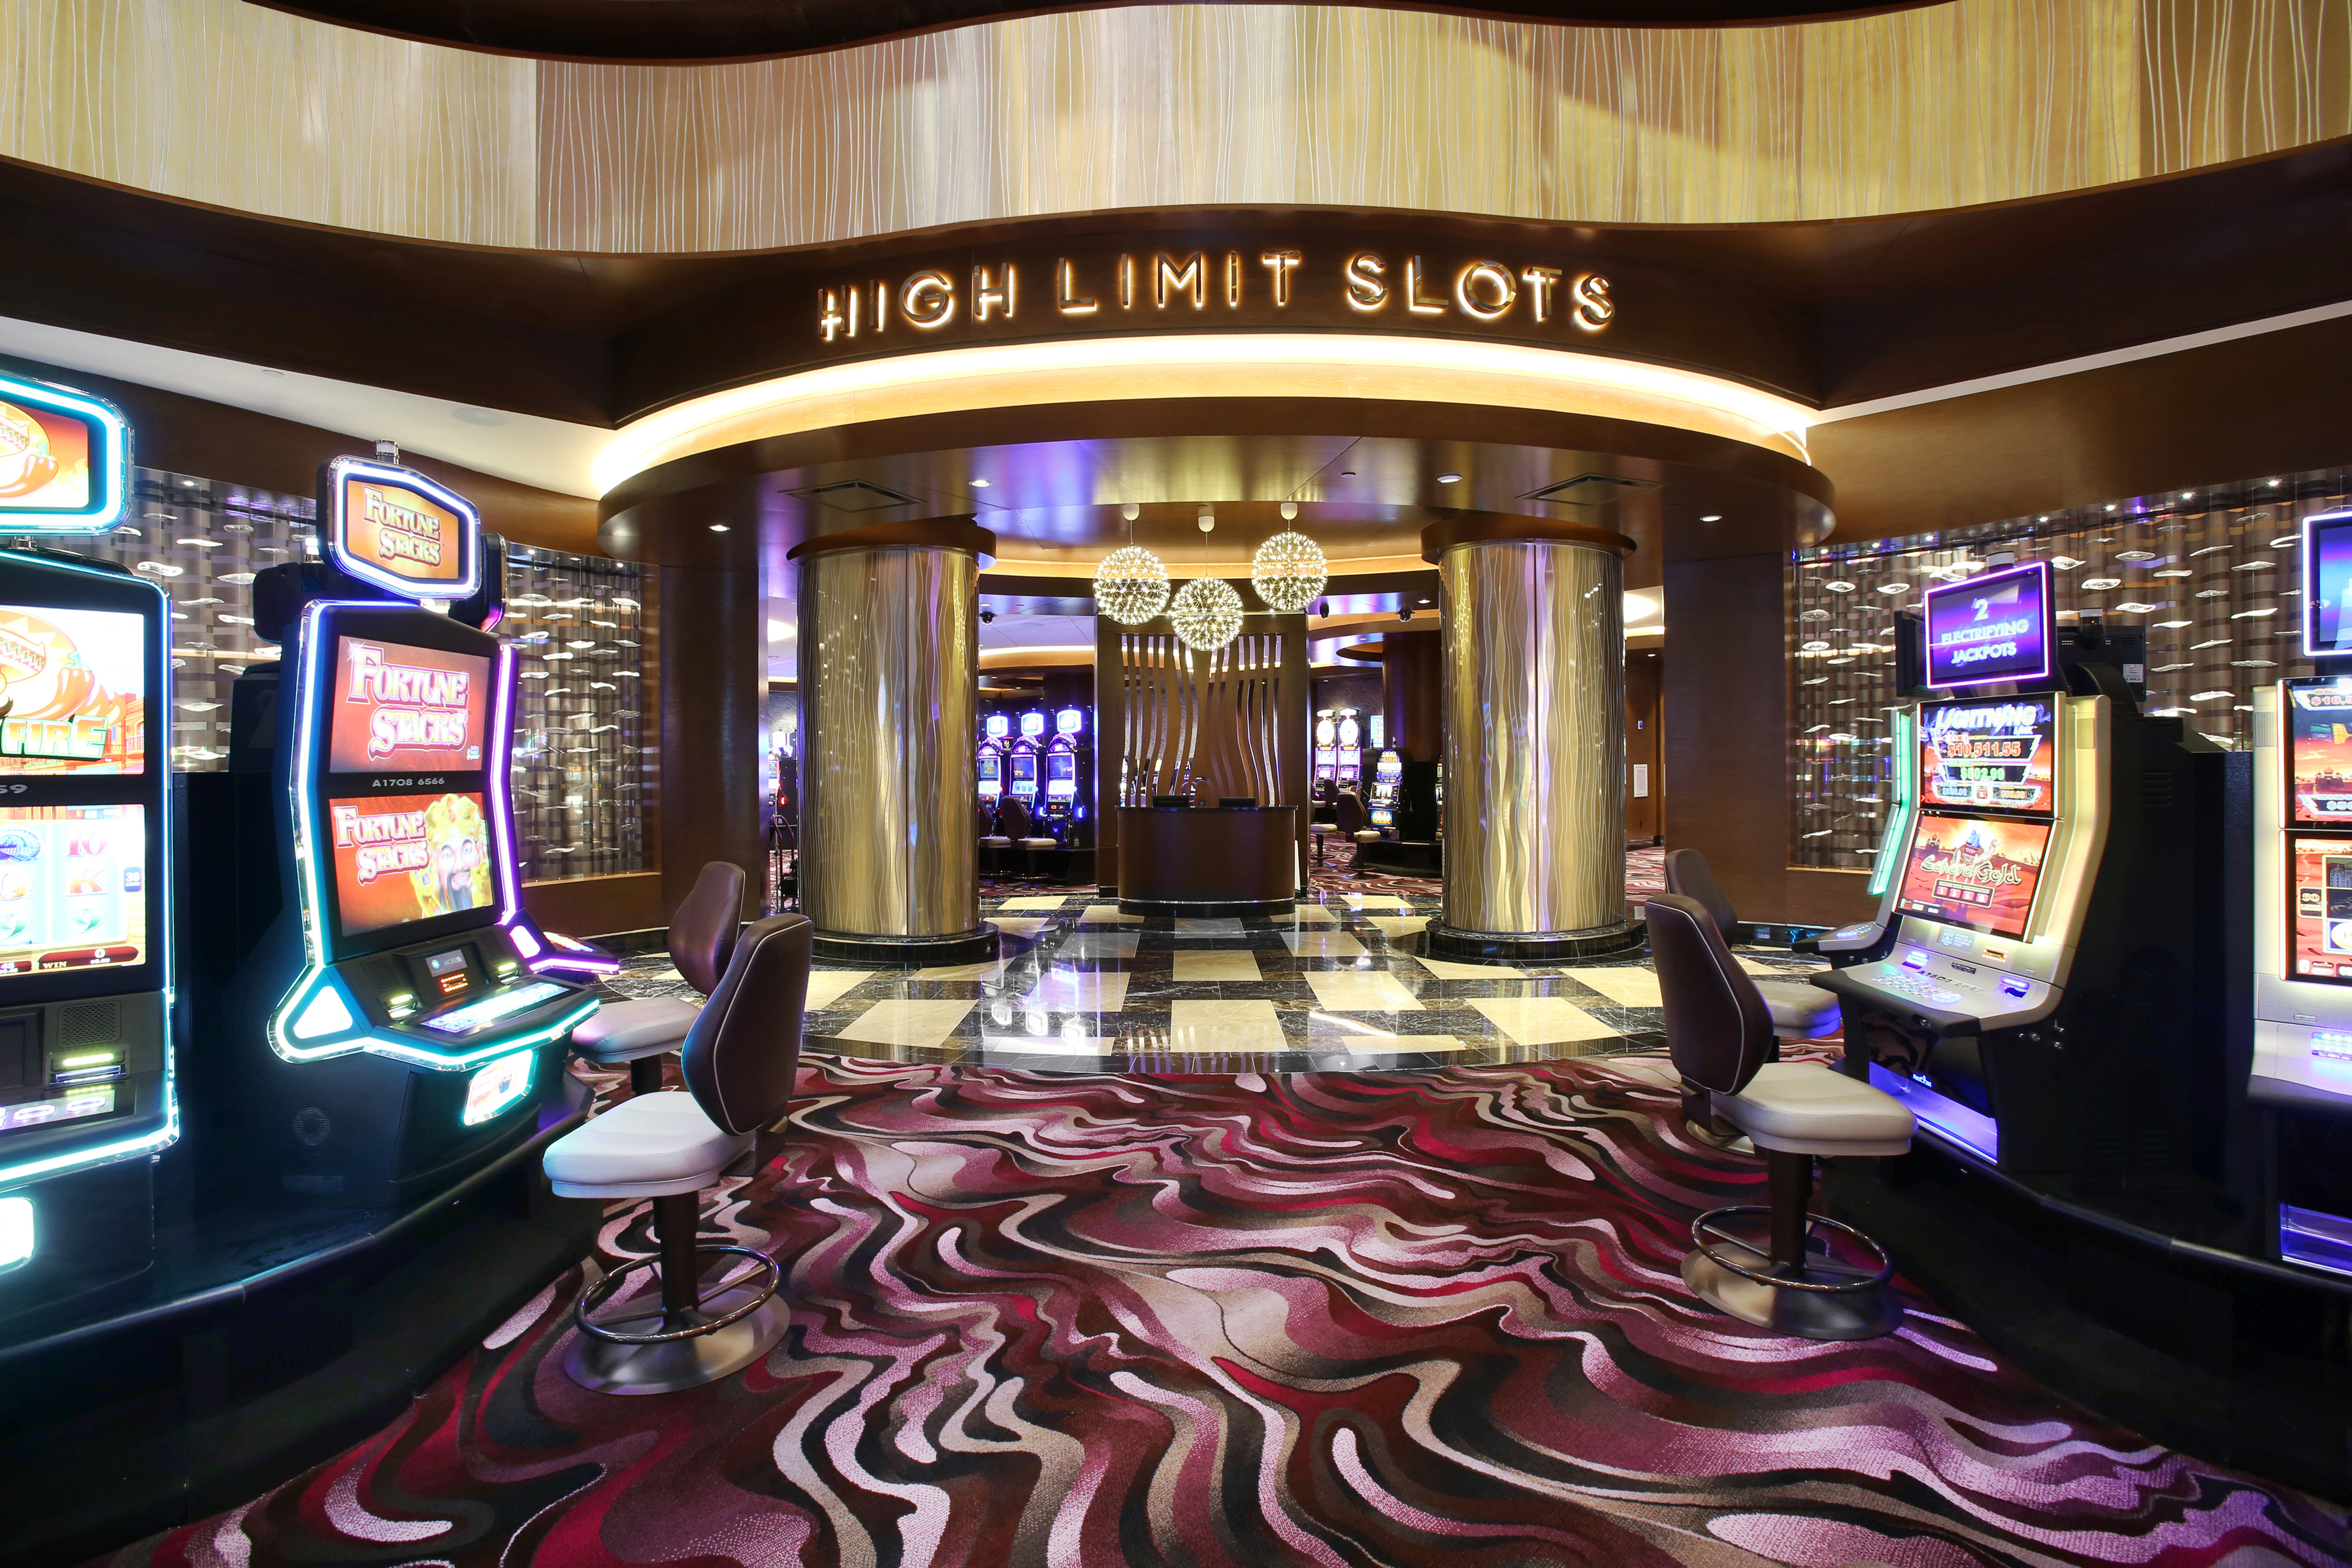 High limit slot winners videos